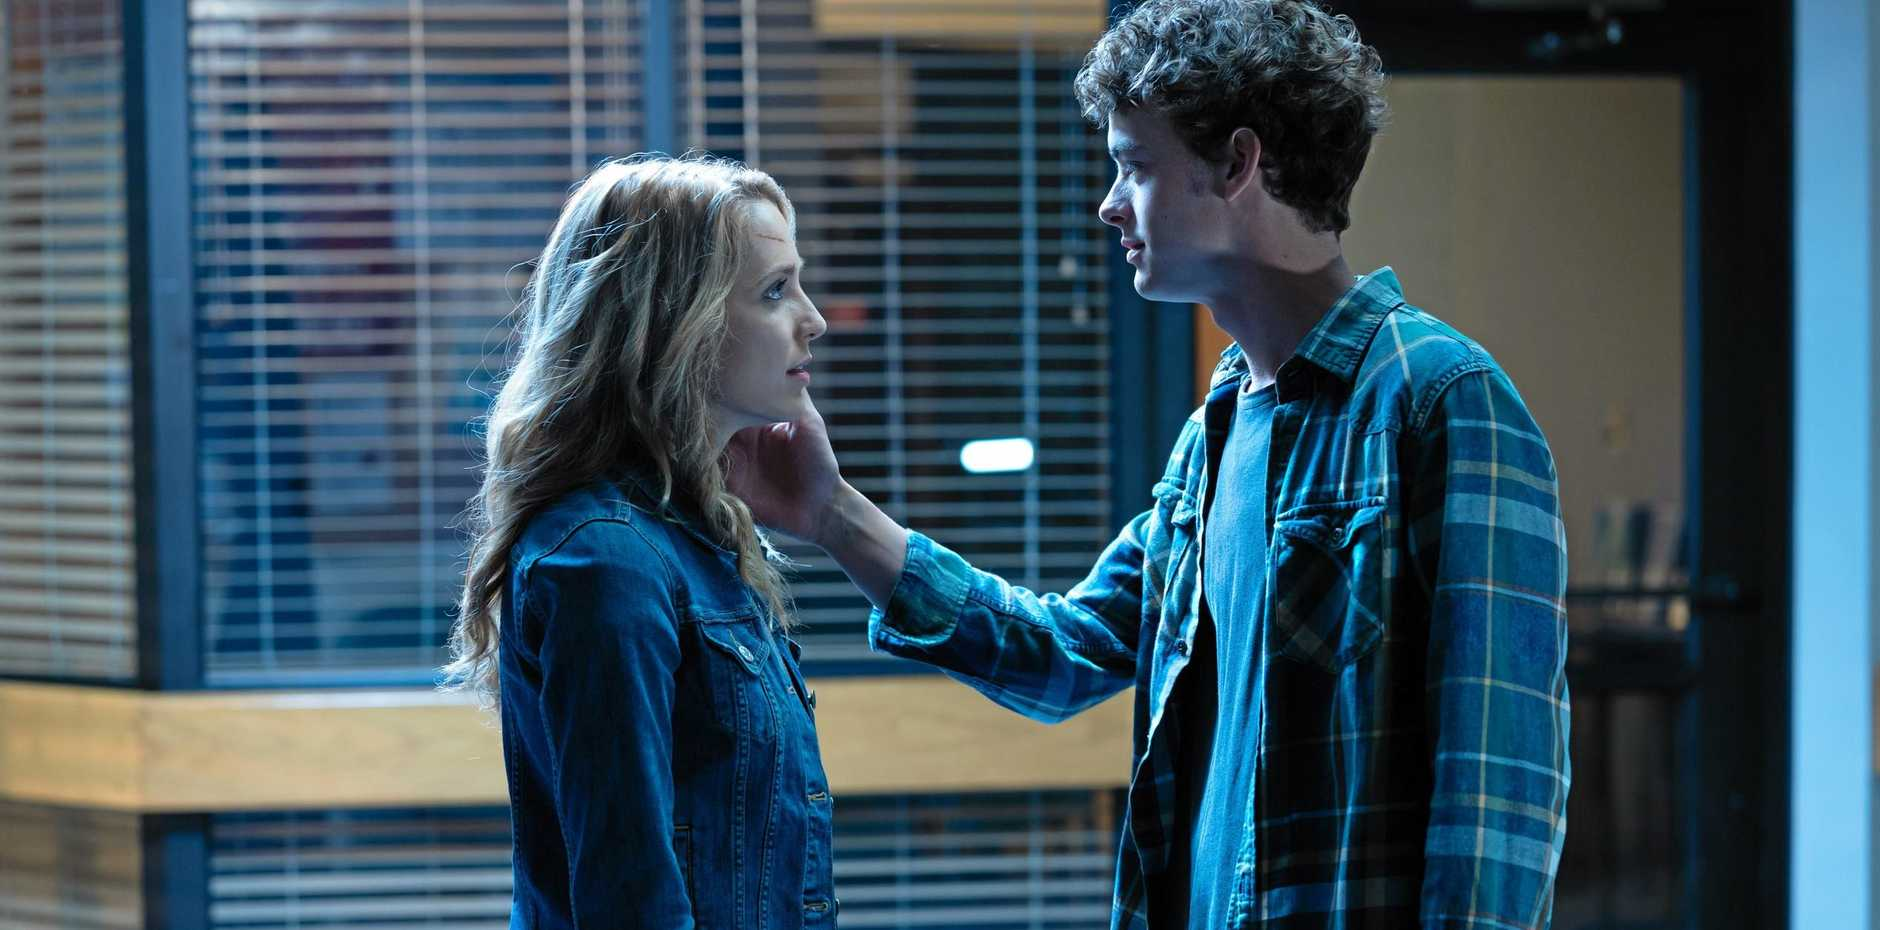 Jessica Rothe and Israel Broussard in a scene from Happy Death Day 2U.